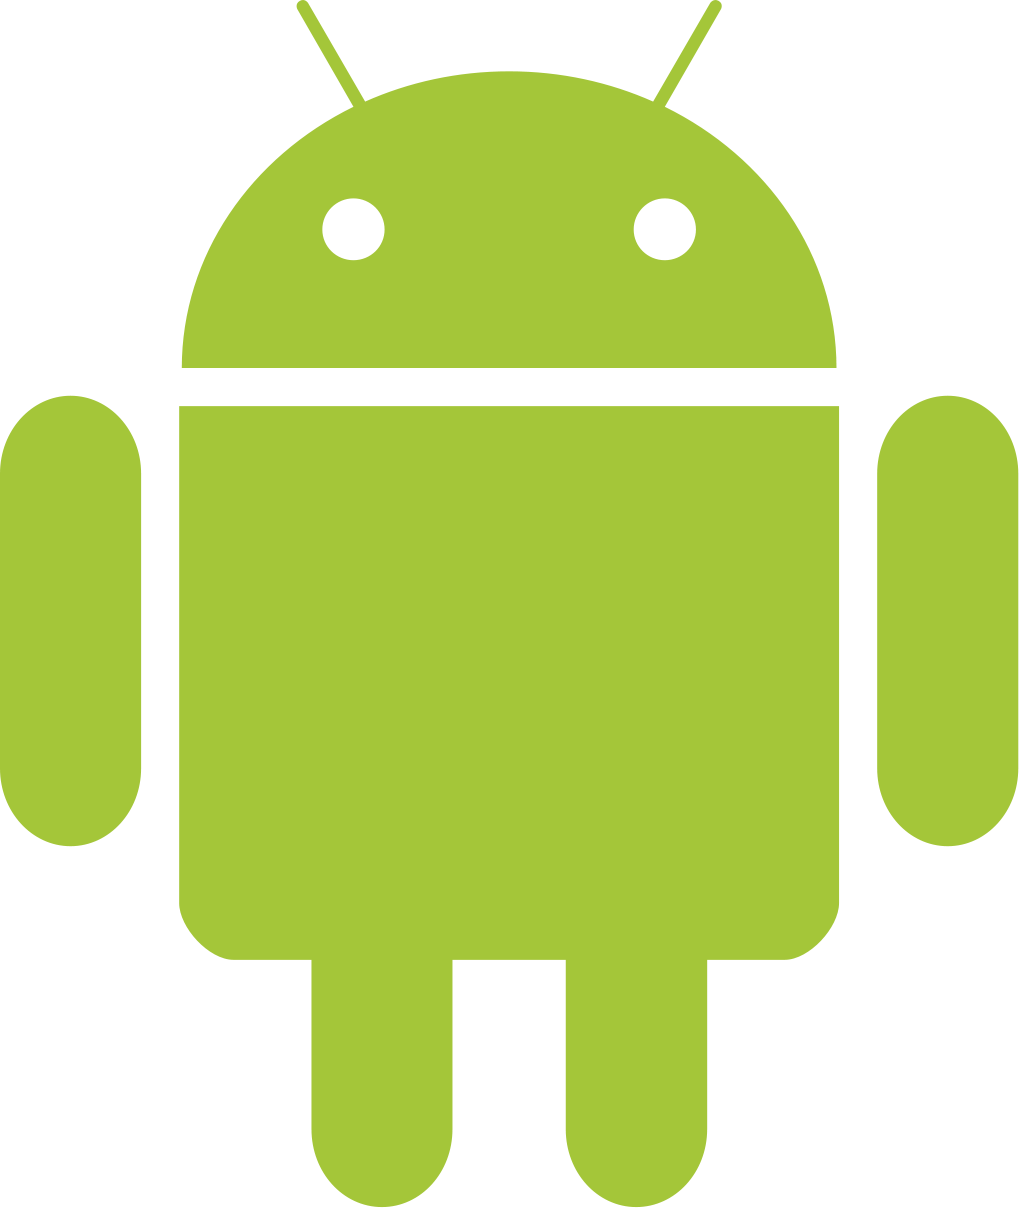 Legal Android